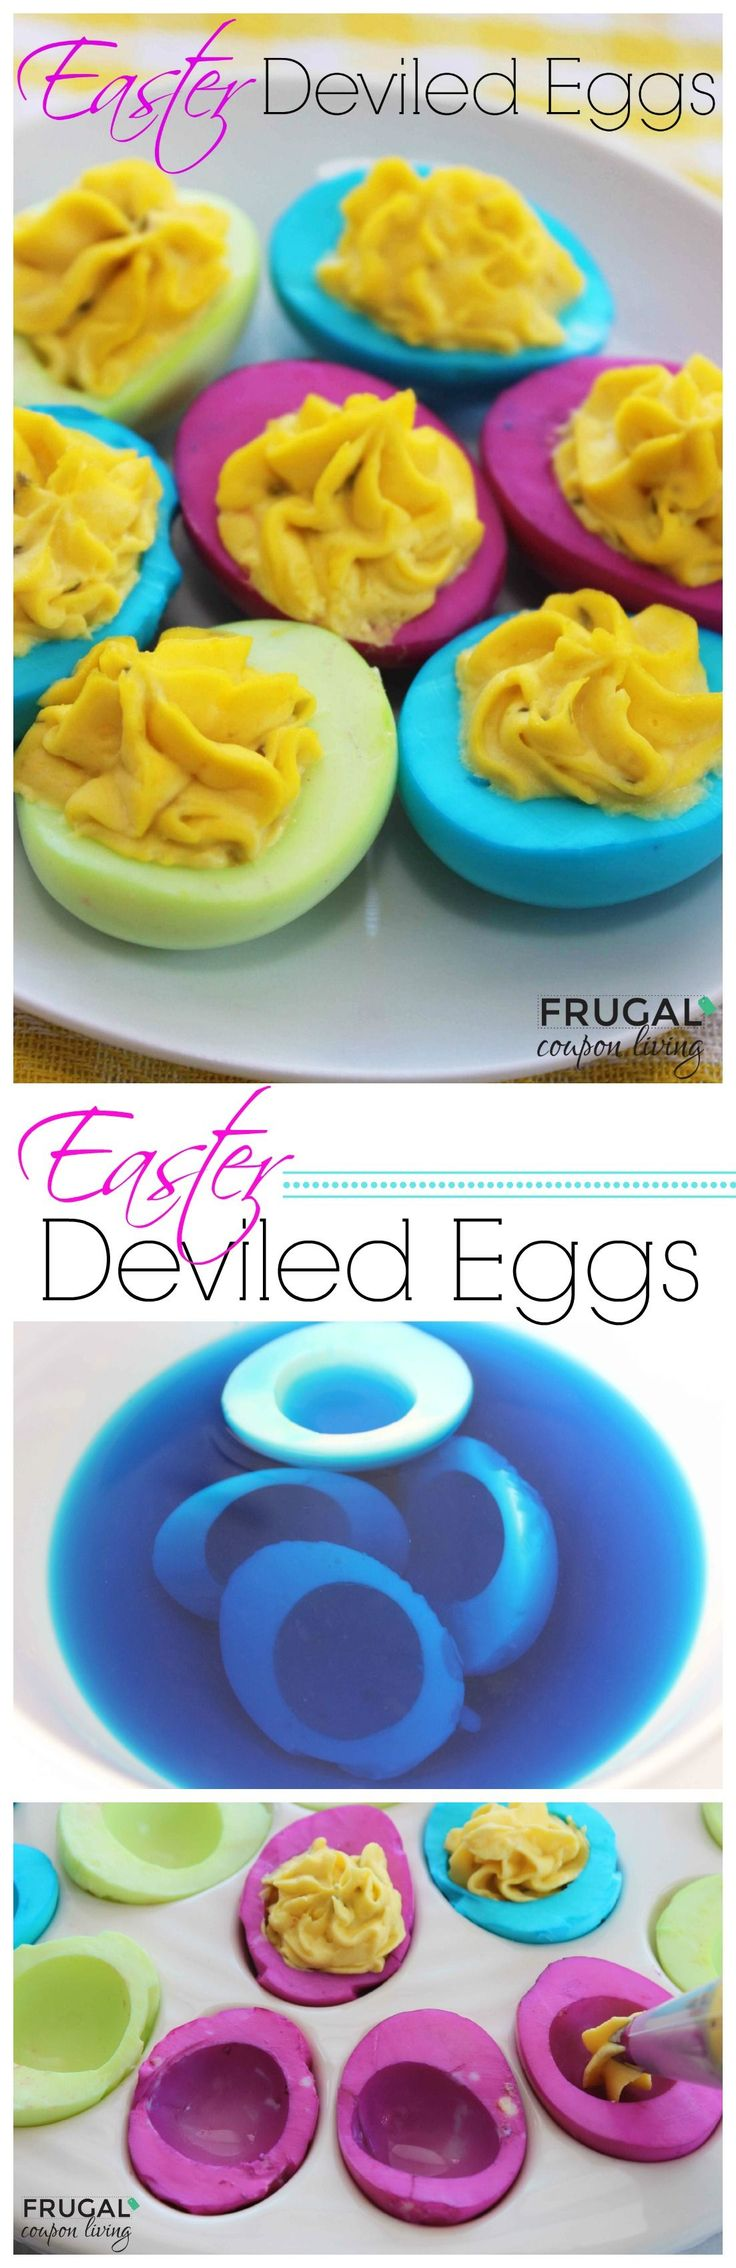 Easter Deviled Eggs - Tutorial on how to color the egg whites of your hard boiled eggs. Kids Food Craft. Easter Eggs Recipe. Egg Recipe.